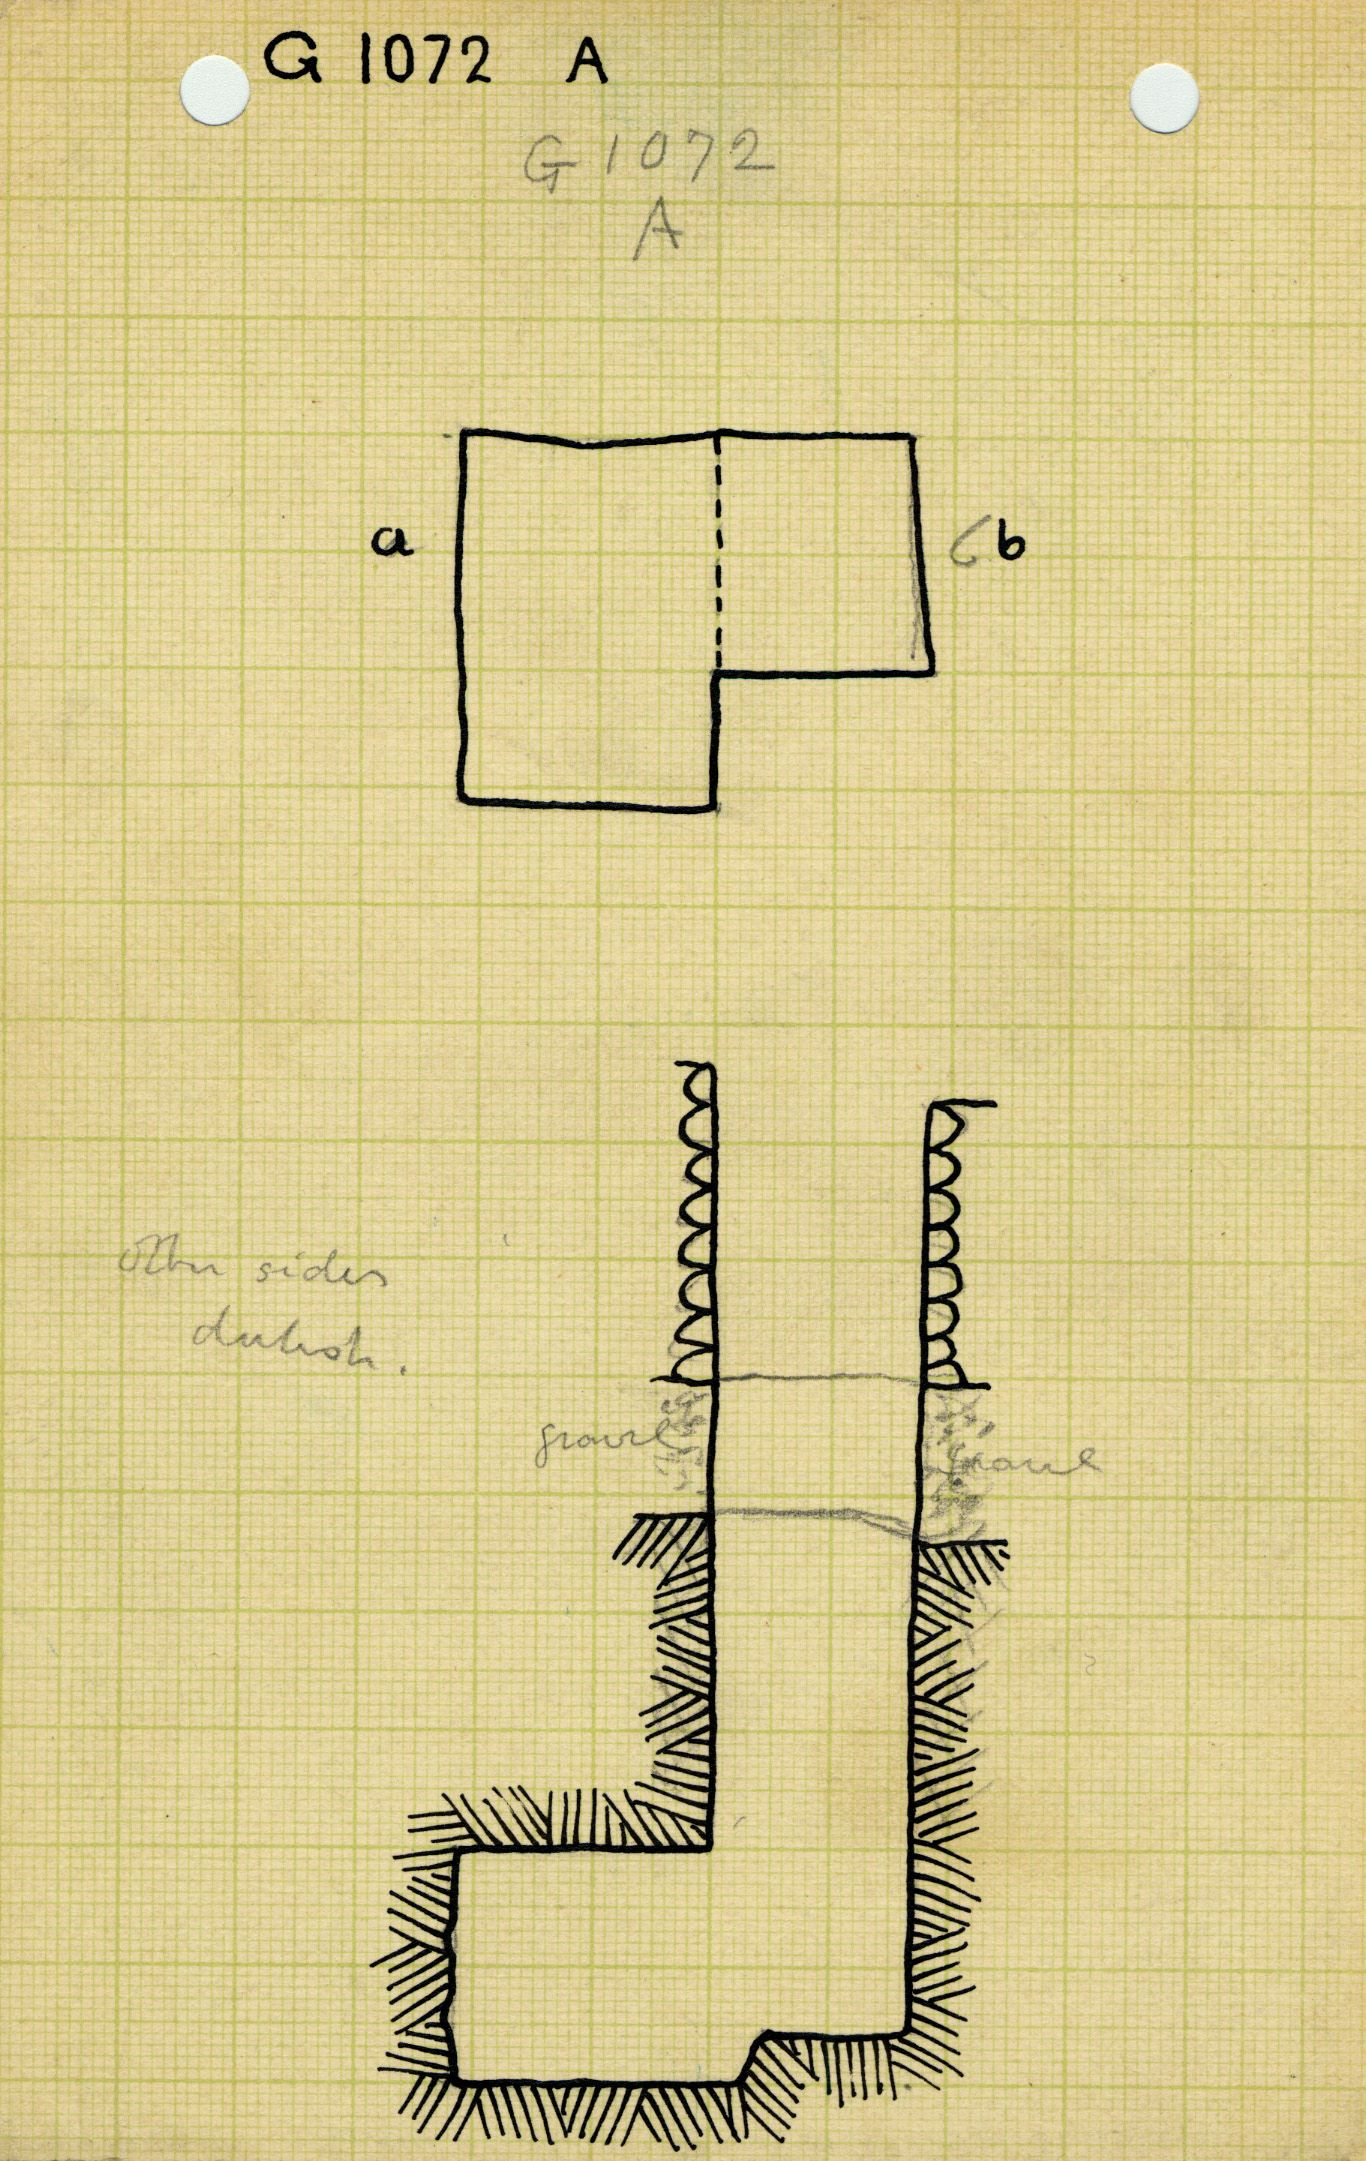 Maps and plans: G 1072, Shaft A